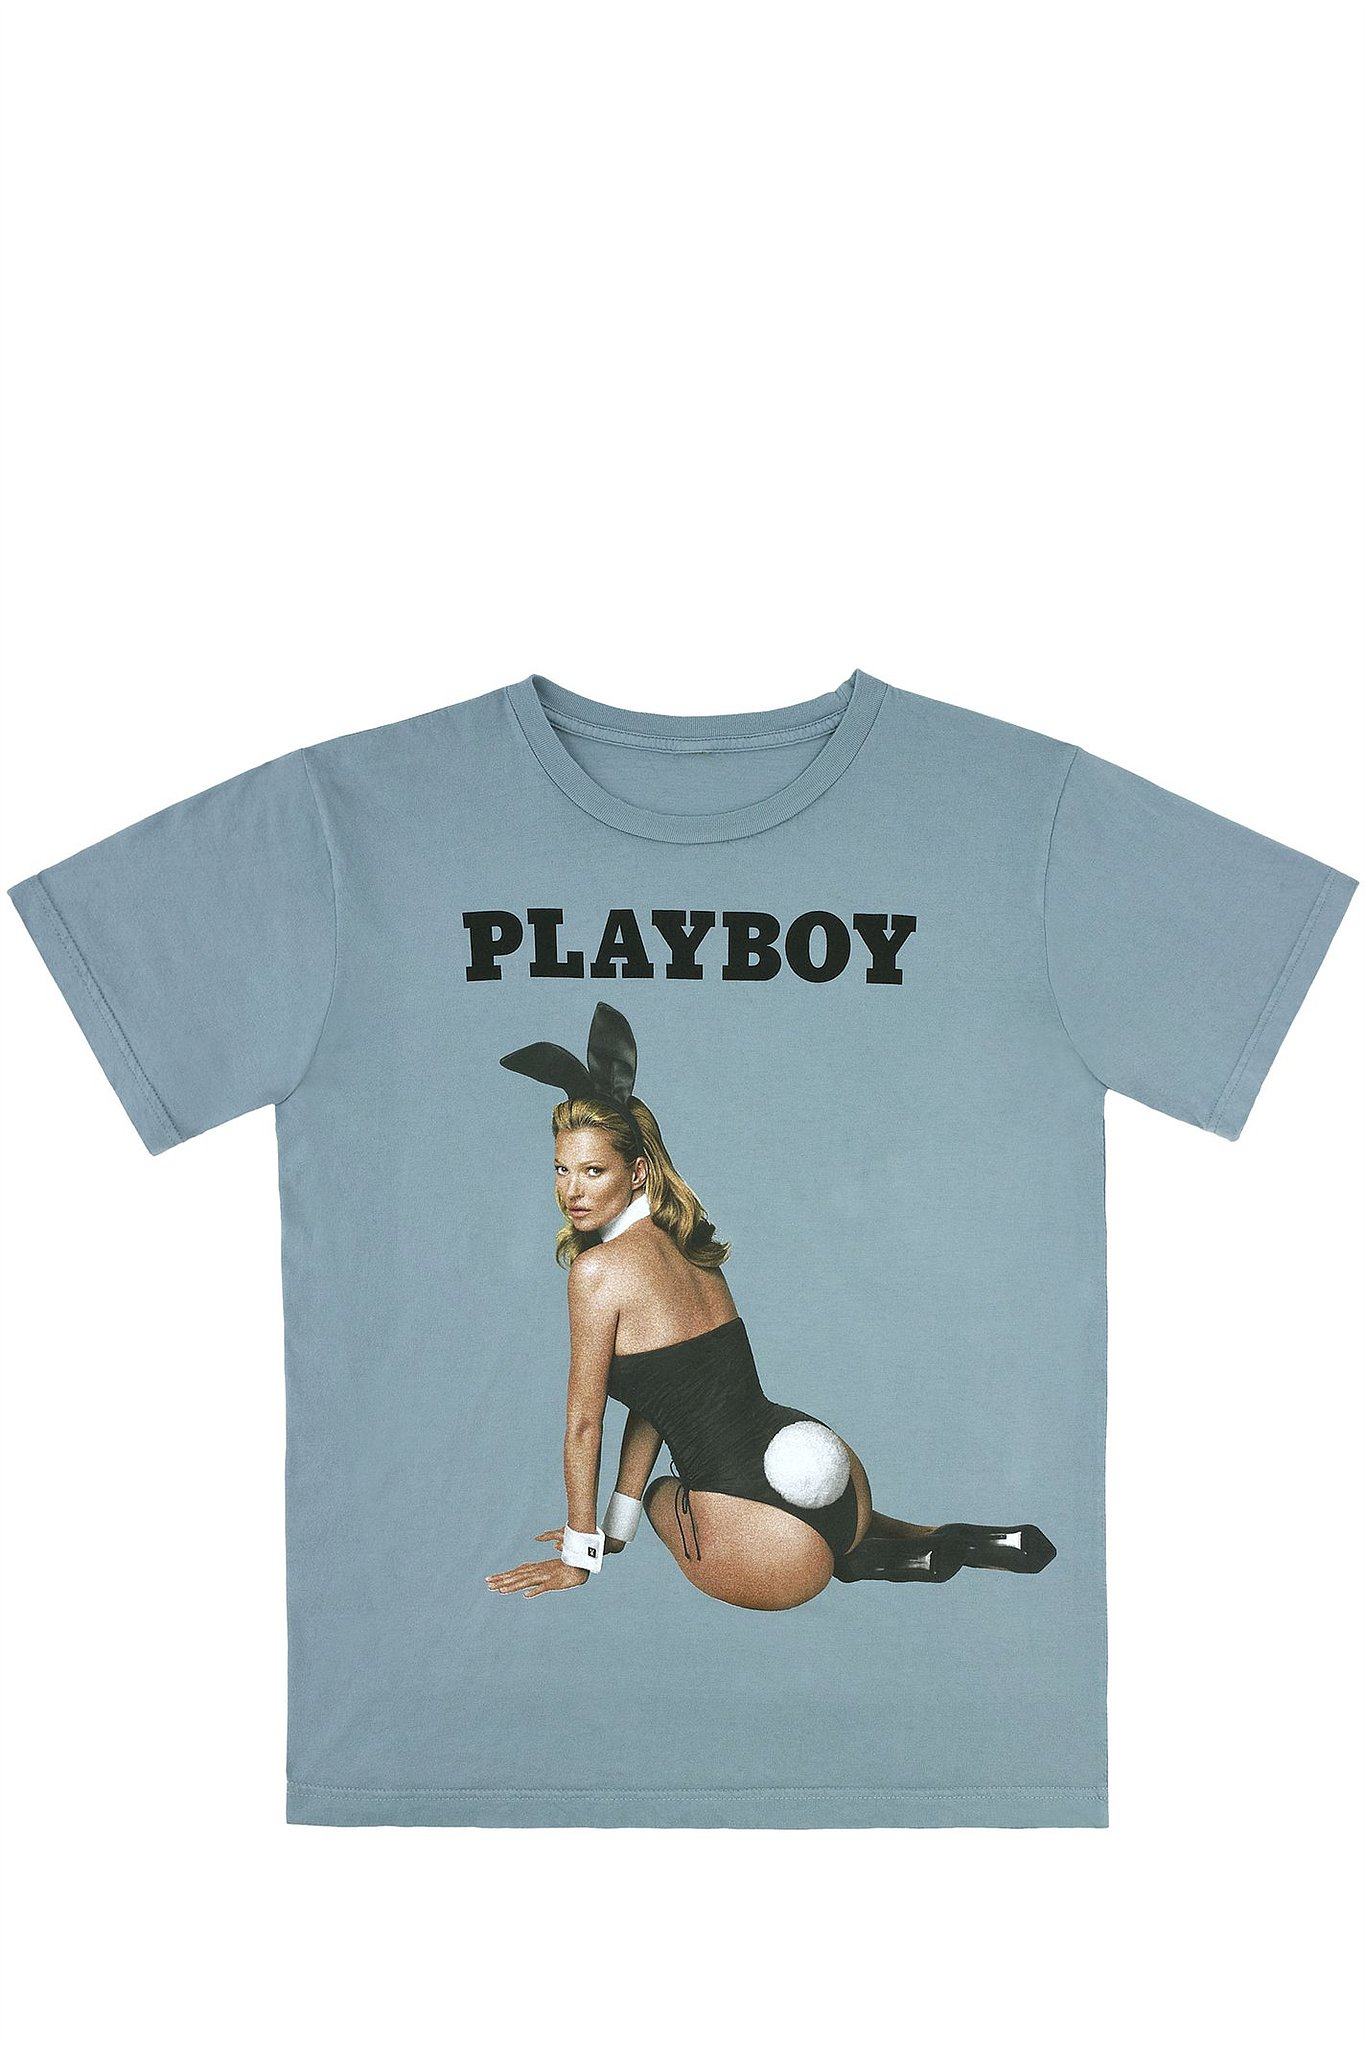 We've been talking about the Kate Moss Playboy cover all 2013, and now I'll be wearing it all 2014 ($35). Best of all: this alluring tee goes to a good cause, with all proceeds donated to amfAR. — RM